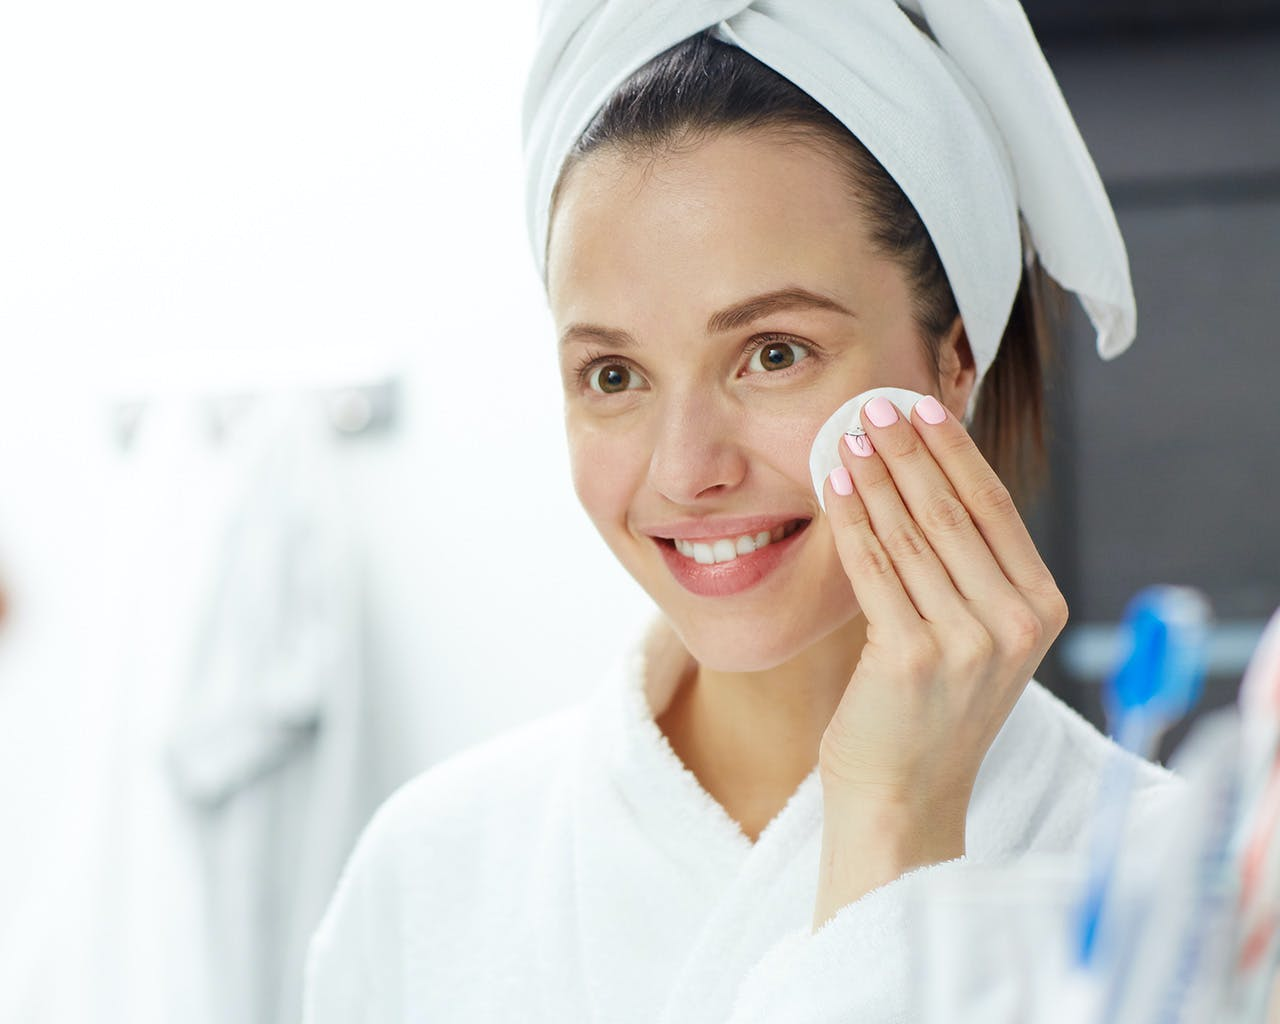 Wipes, Cleansing Oil, Micellar Water: Which Type Of Makeup Remover Should You Use?